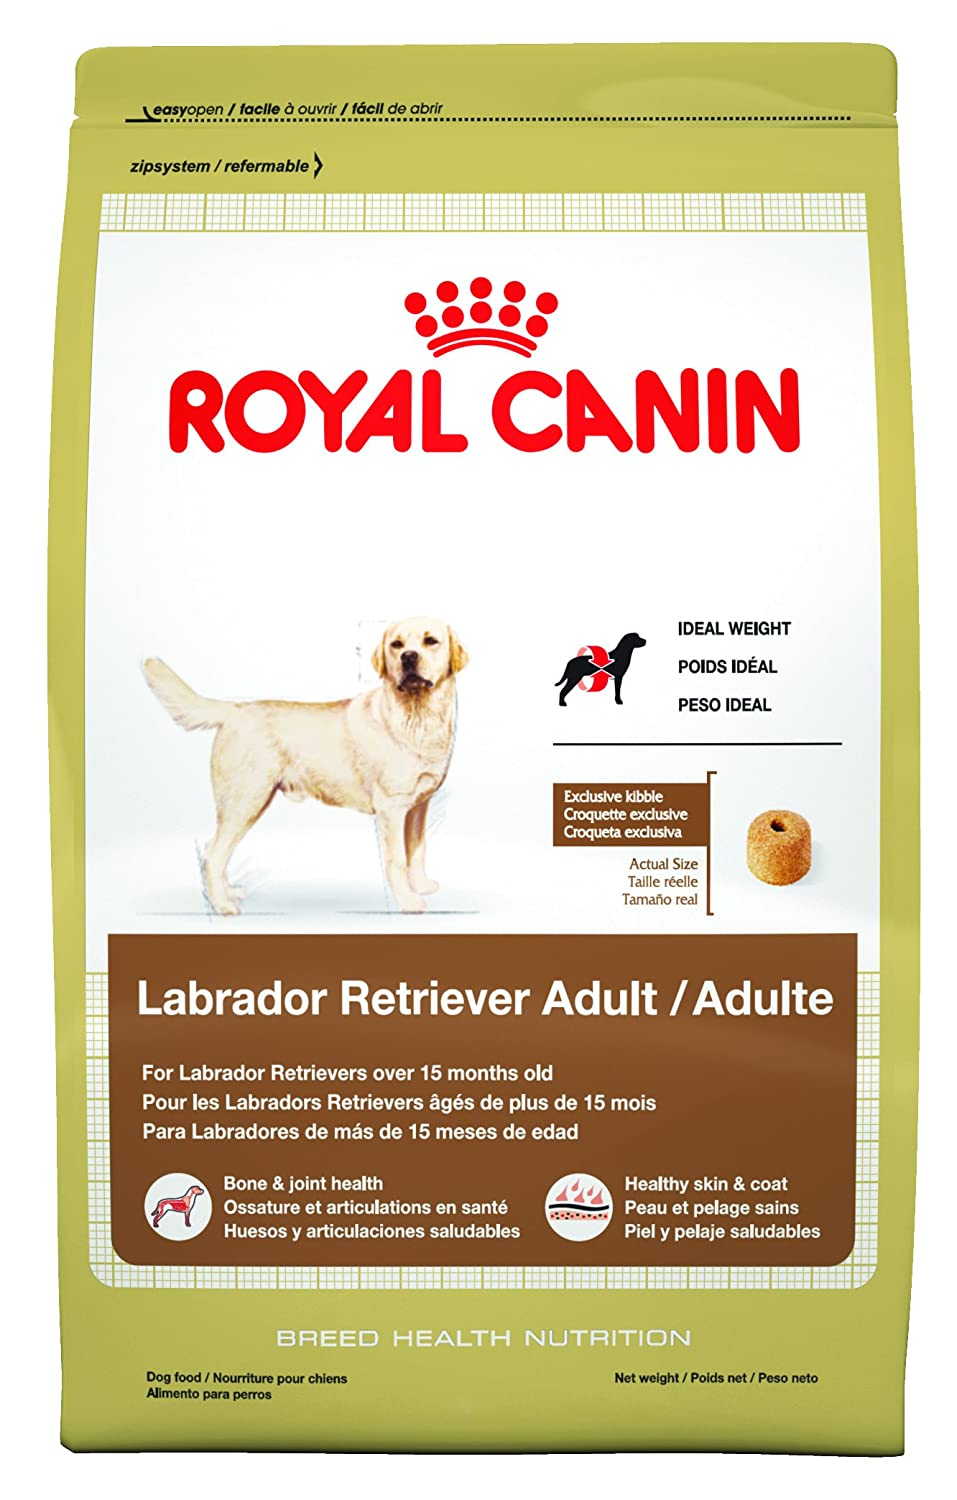 Good Dog Food For Labs: 4 Options For This Large Breed (2017)